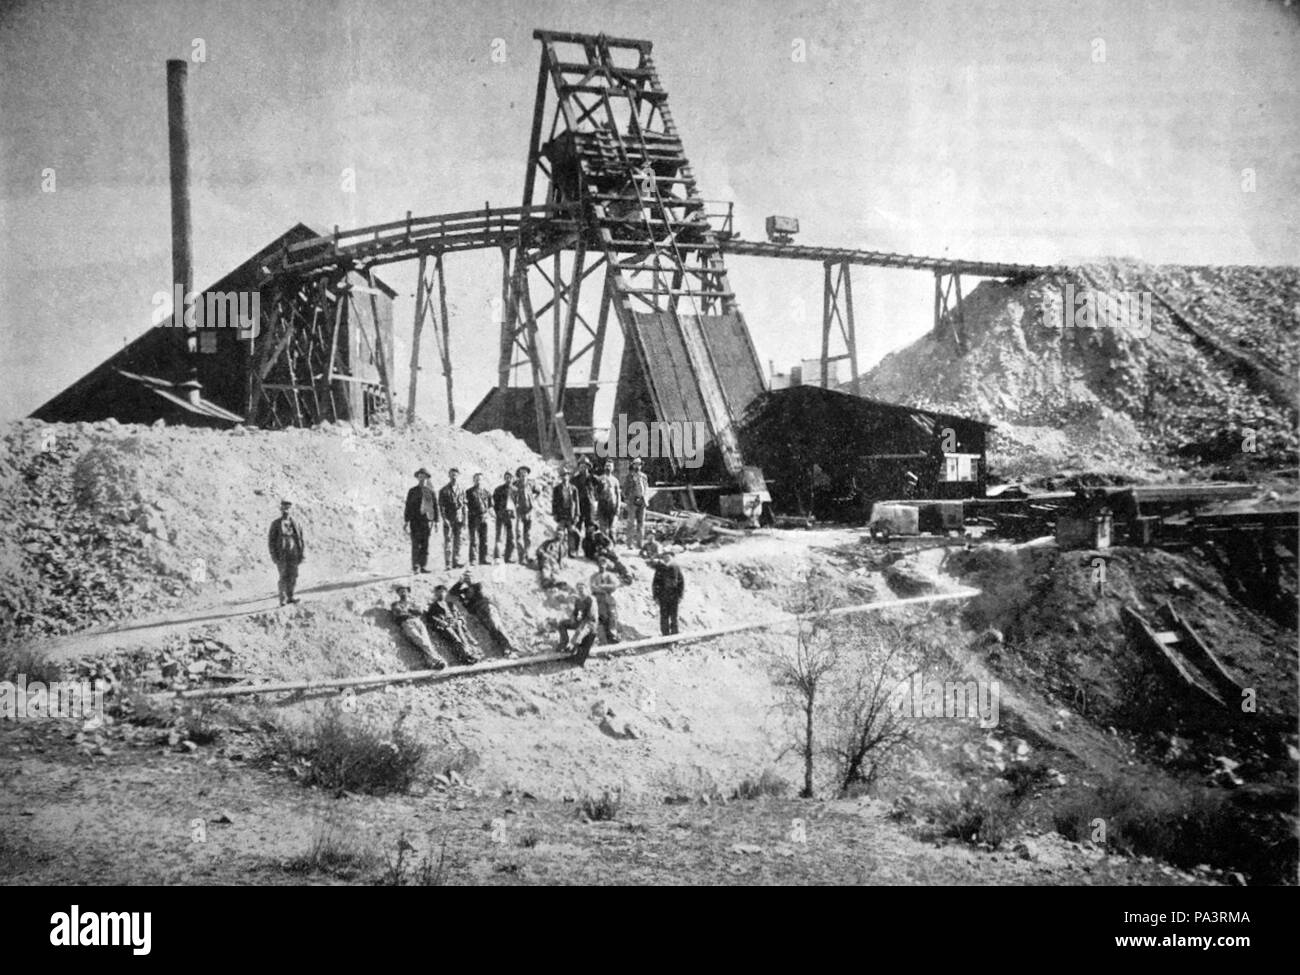 717 Good Hope Mine, between Perris and Lake Elsinore, Riverside County, California - Stock Image